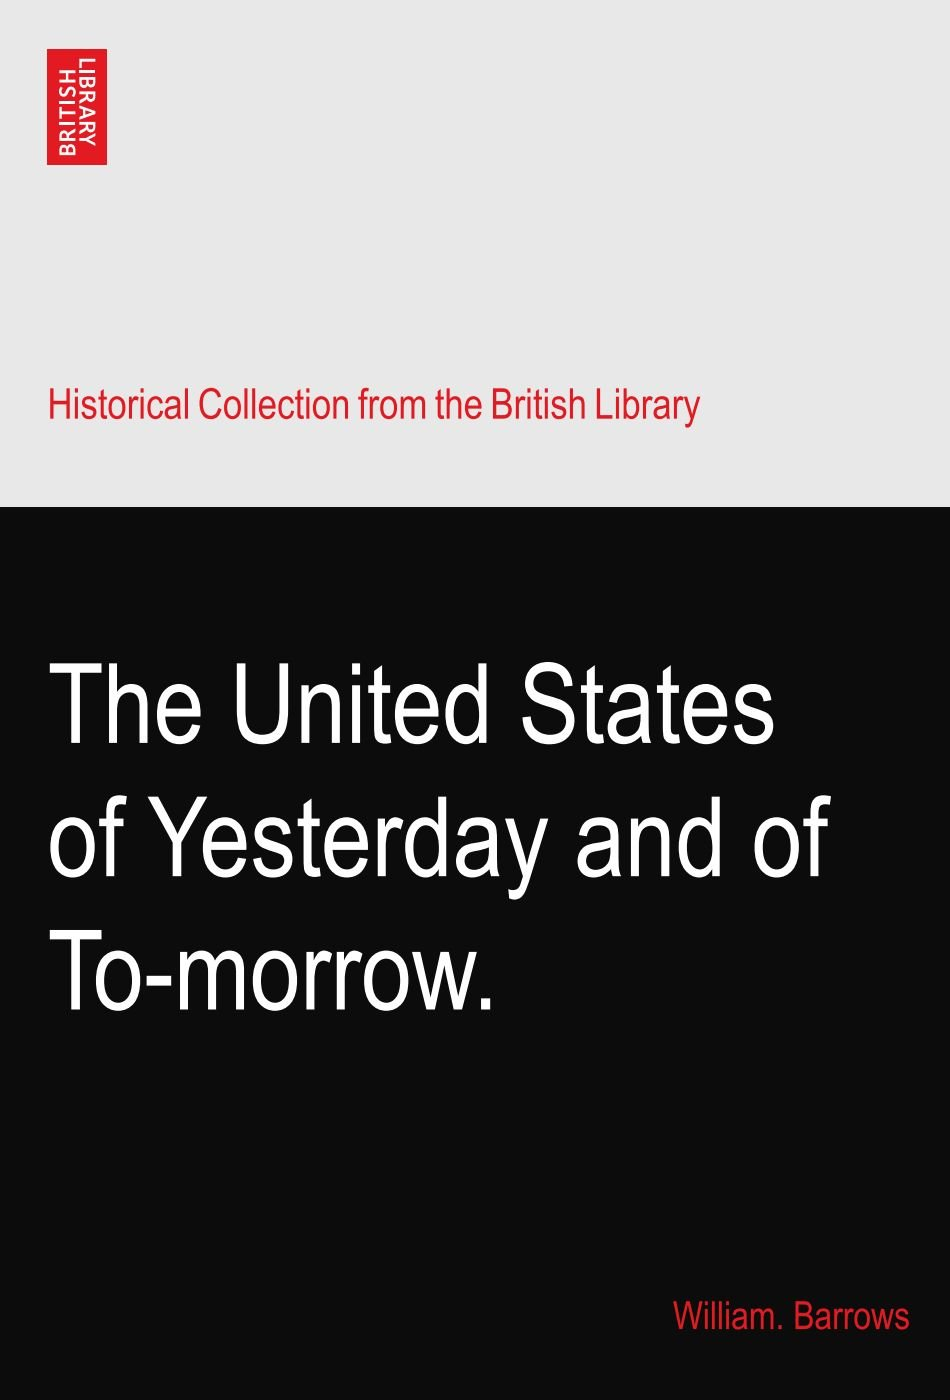 The United States of Yesterday and of To-morrow.